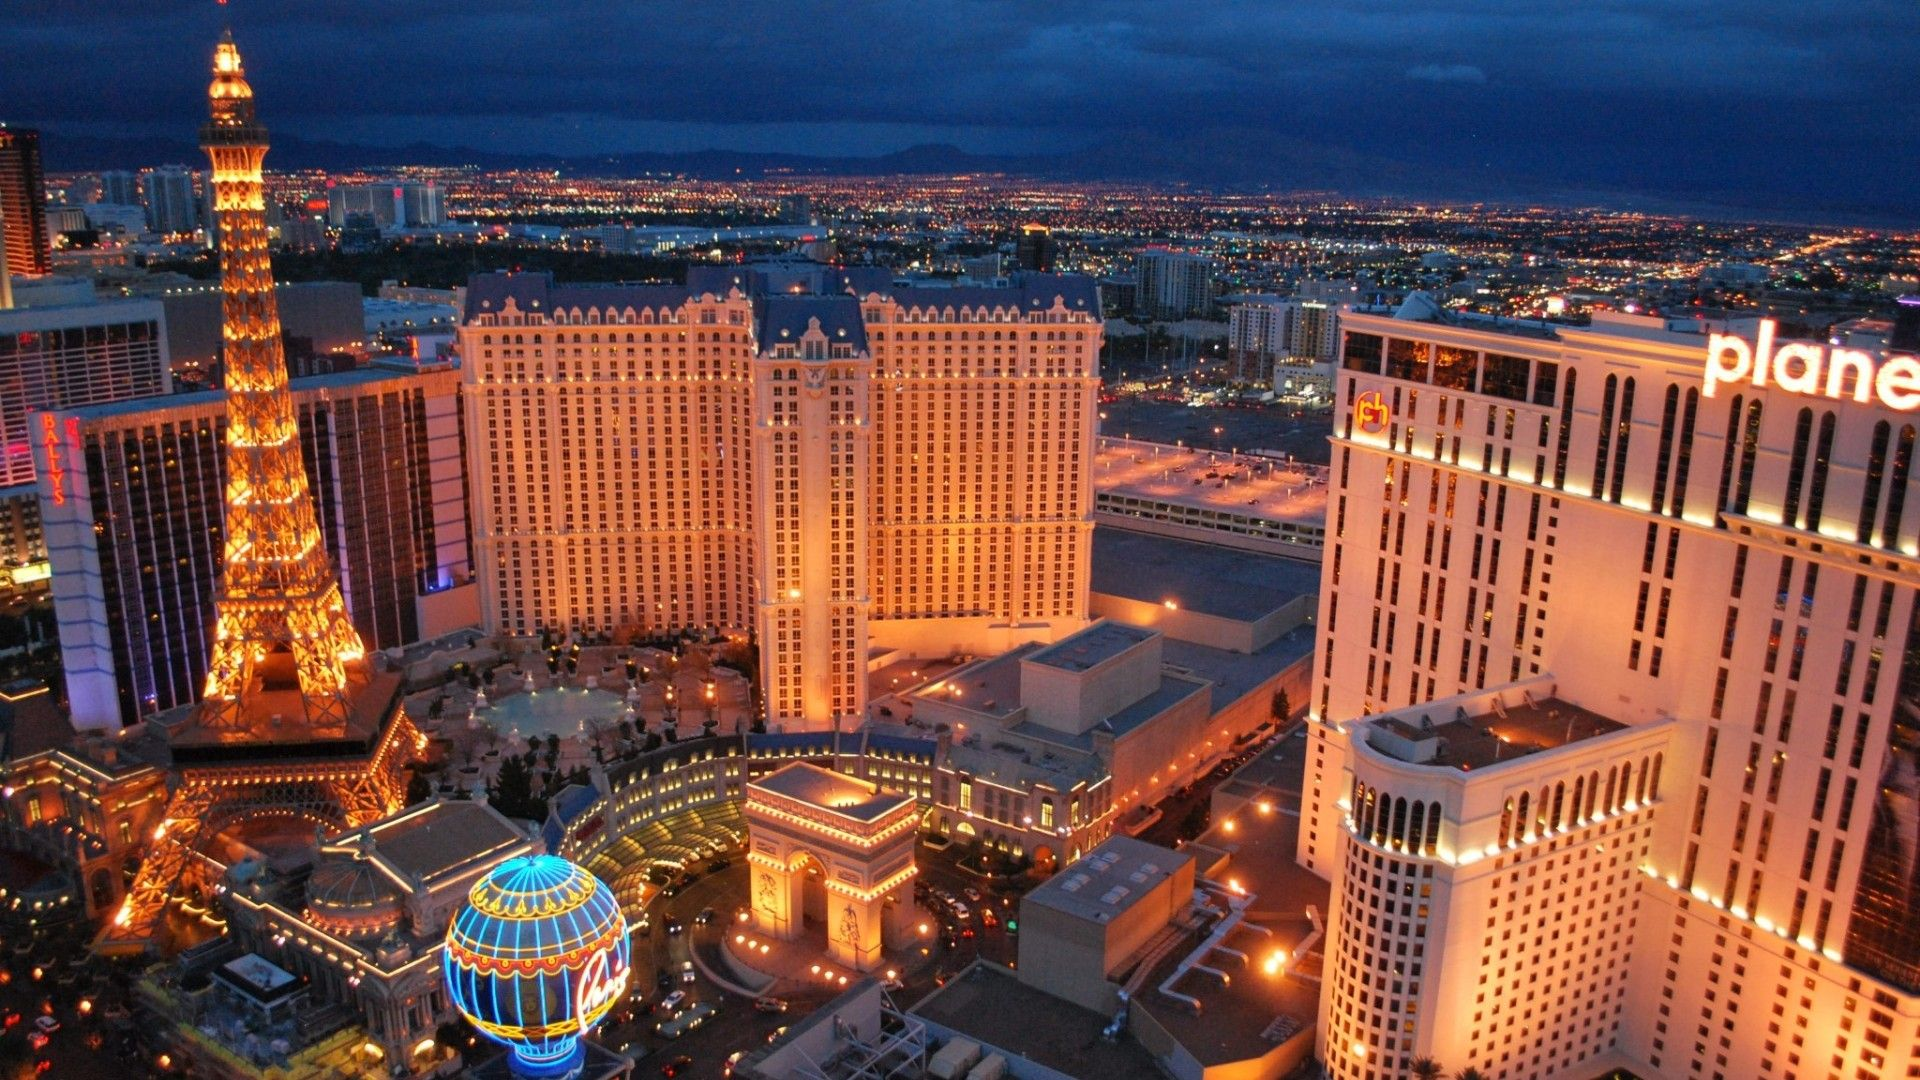 casino venetian las vegas wallpapers pictures 1920a—1080